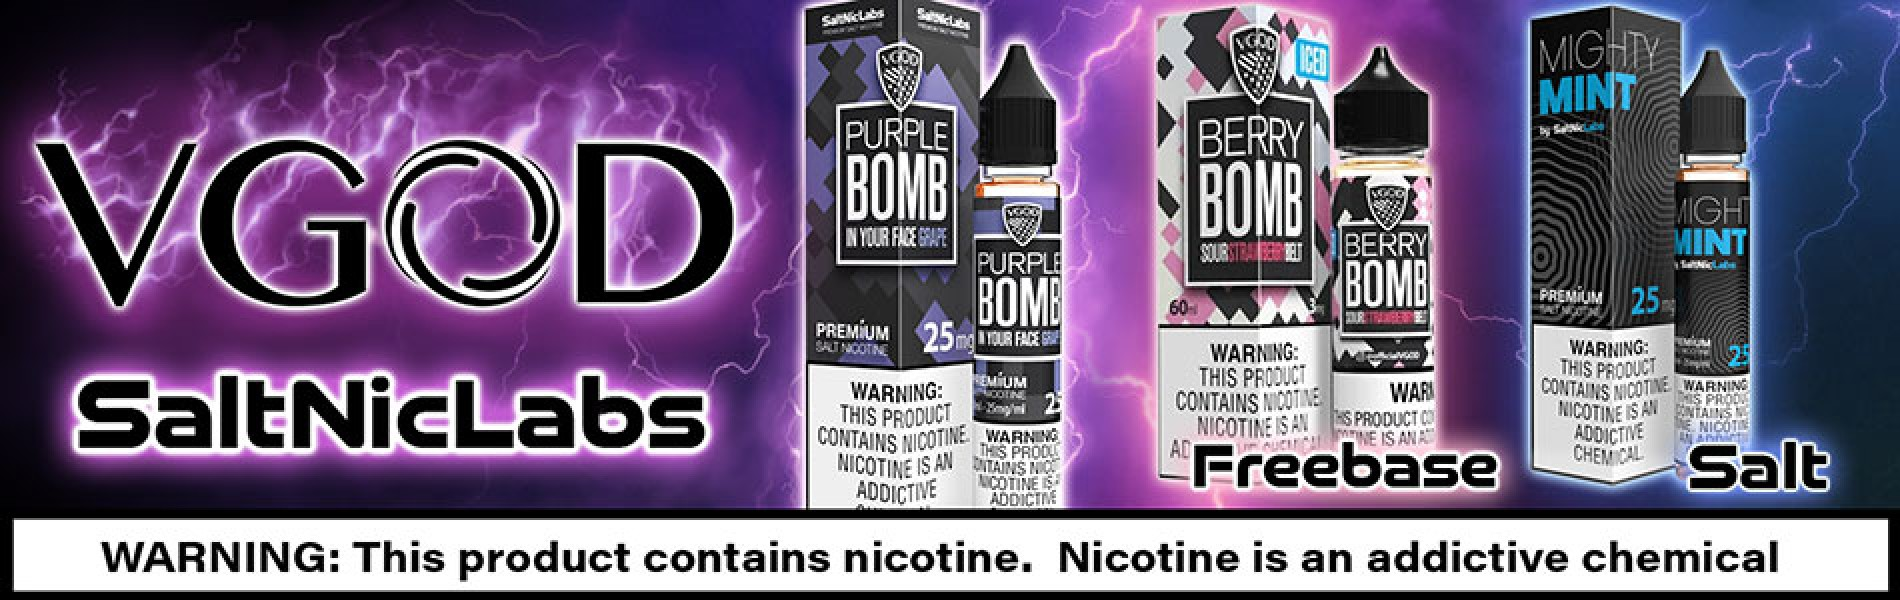 VGod Saltniclabs E-Juice, Freebase and Salt Nic